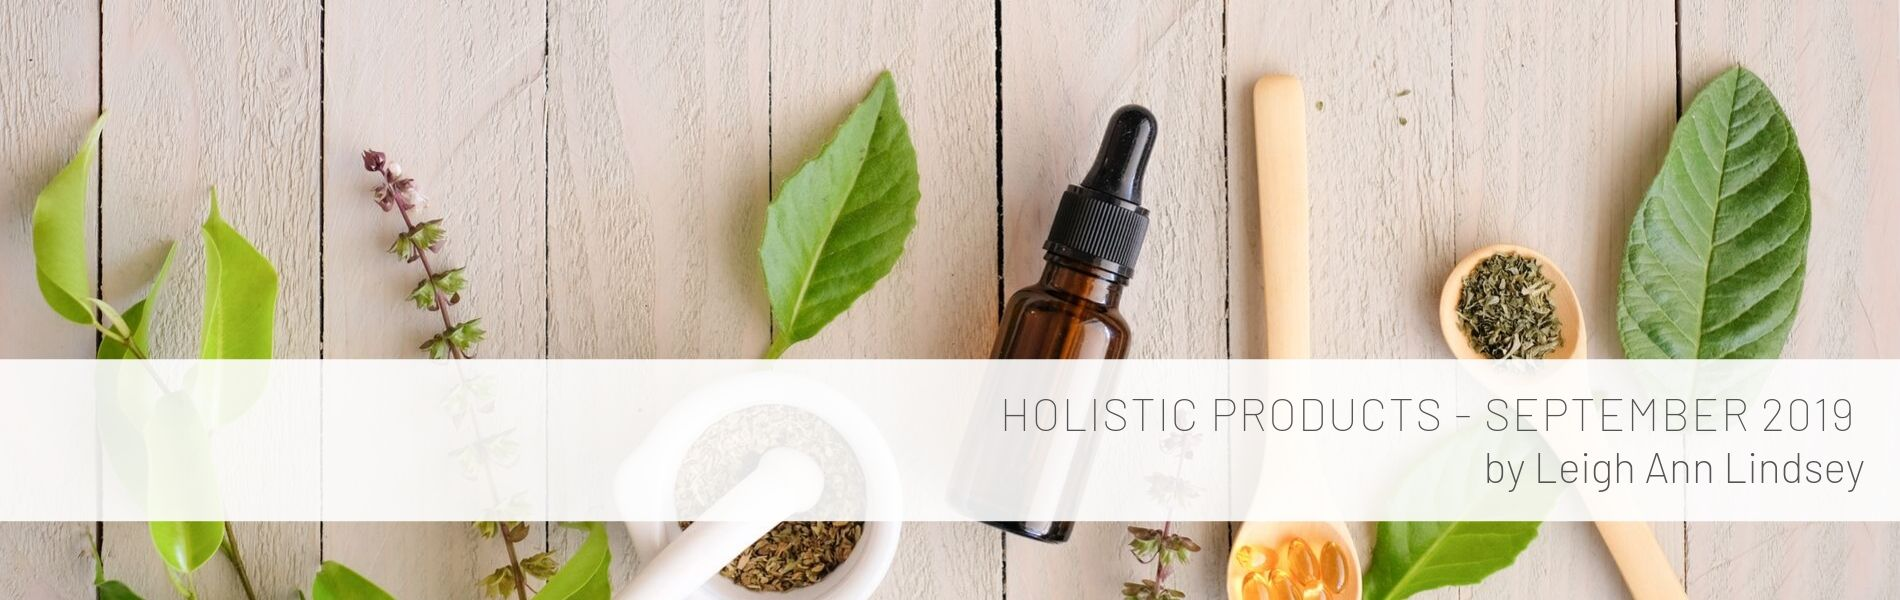 Holistic Products